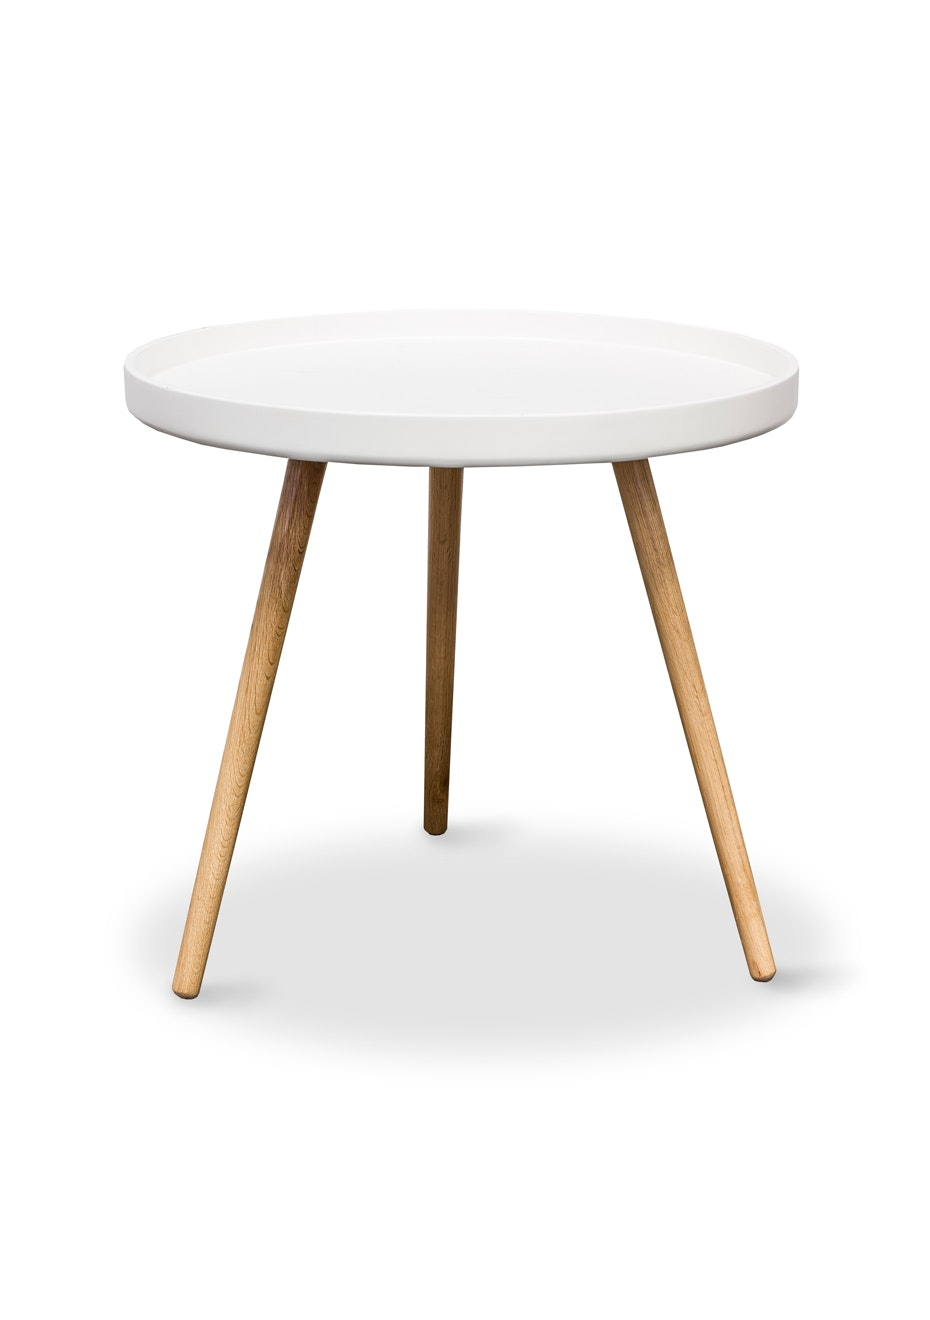 Furniture By Design - Radius Tray Table- White